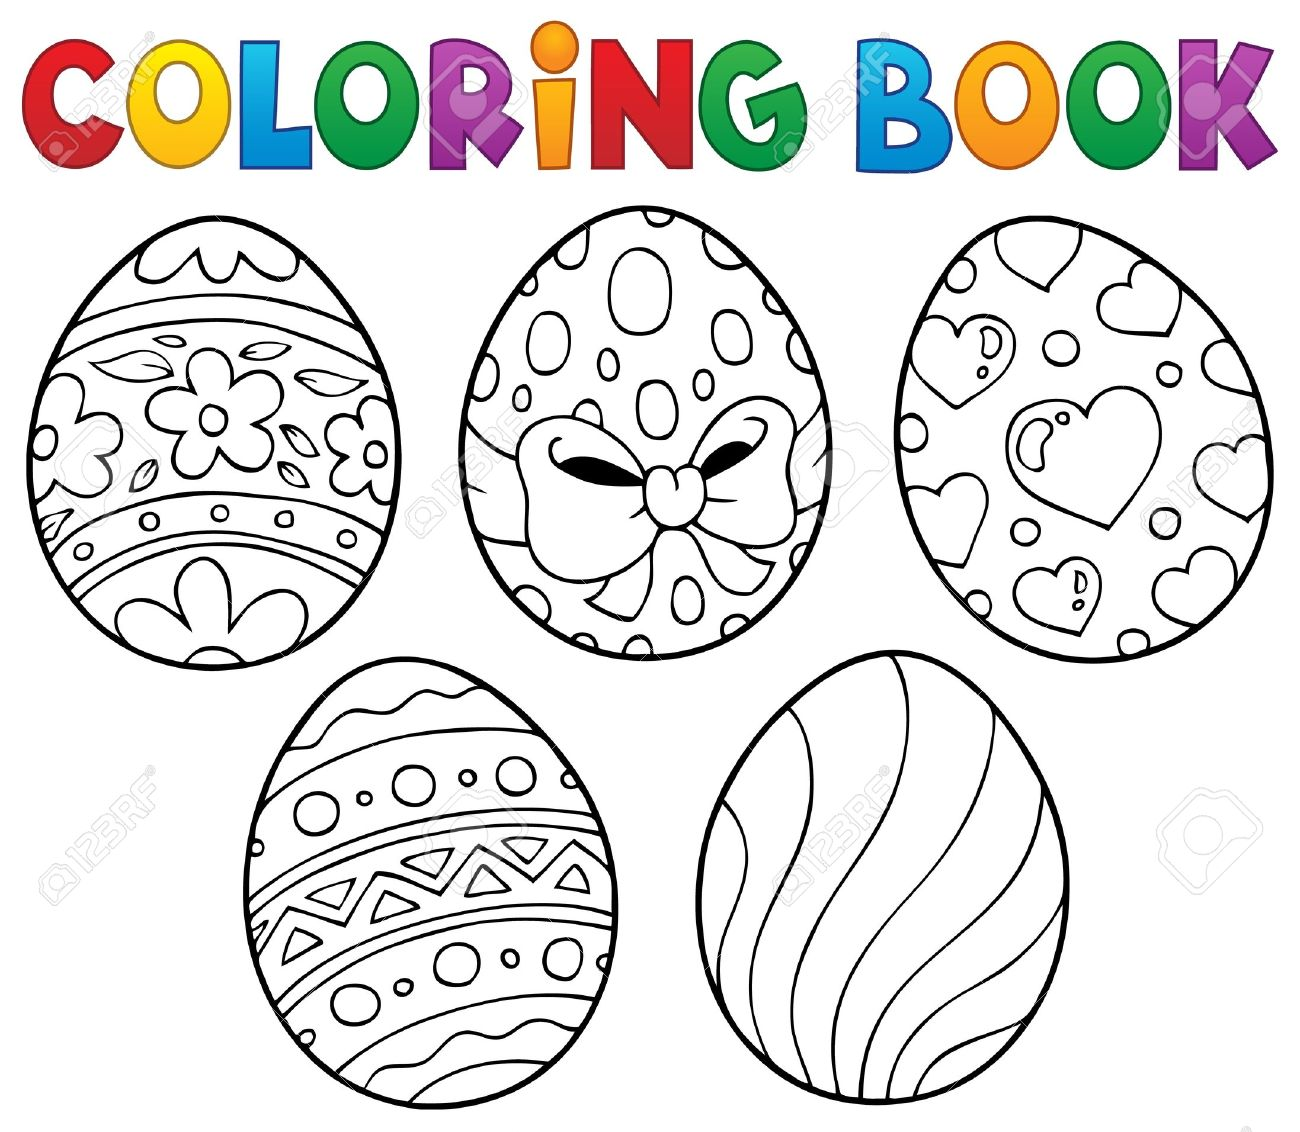 Coloring book Easter eggs theme 10 - eps100 vector illustration.